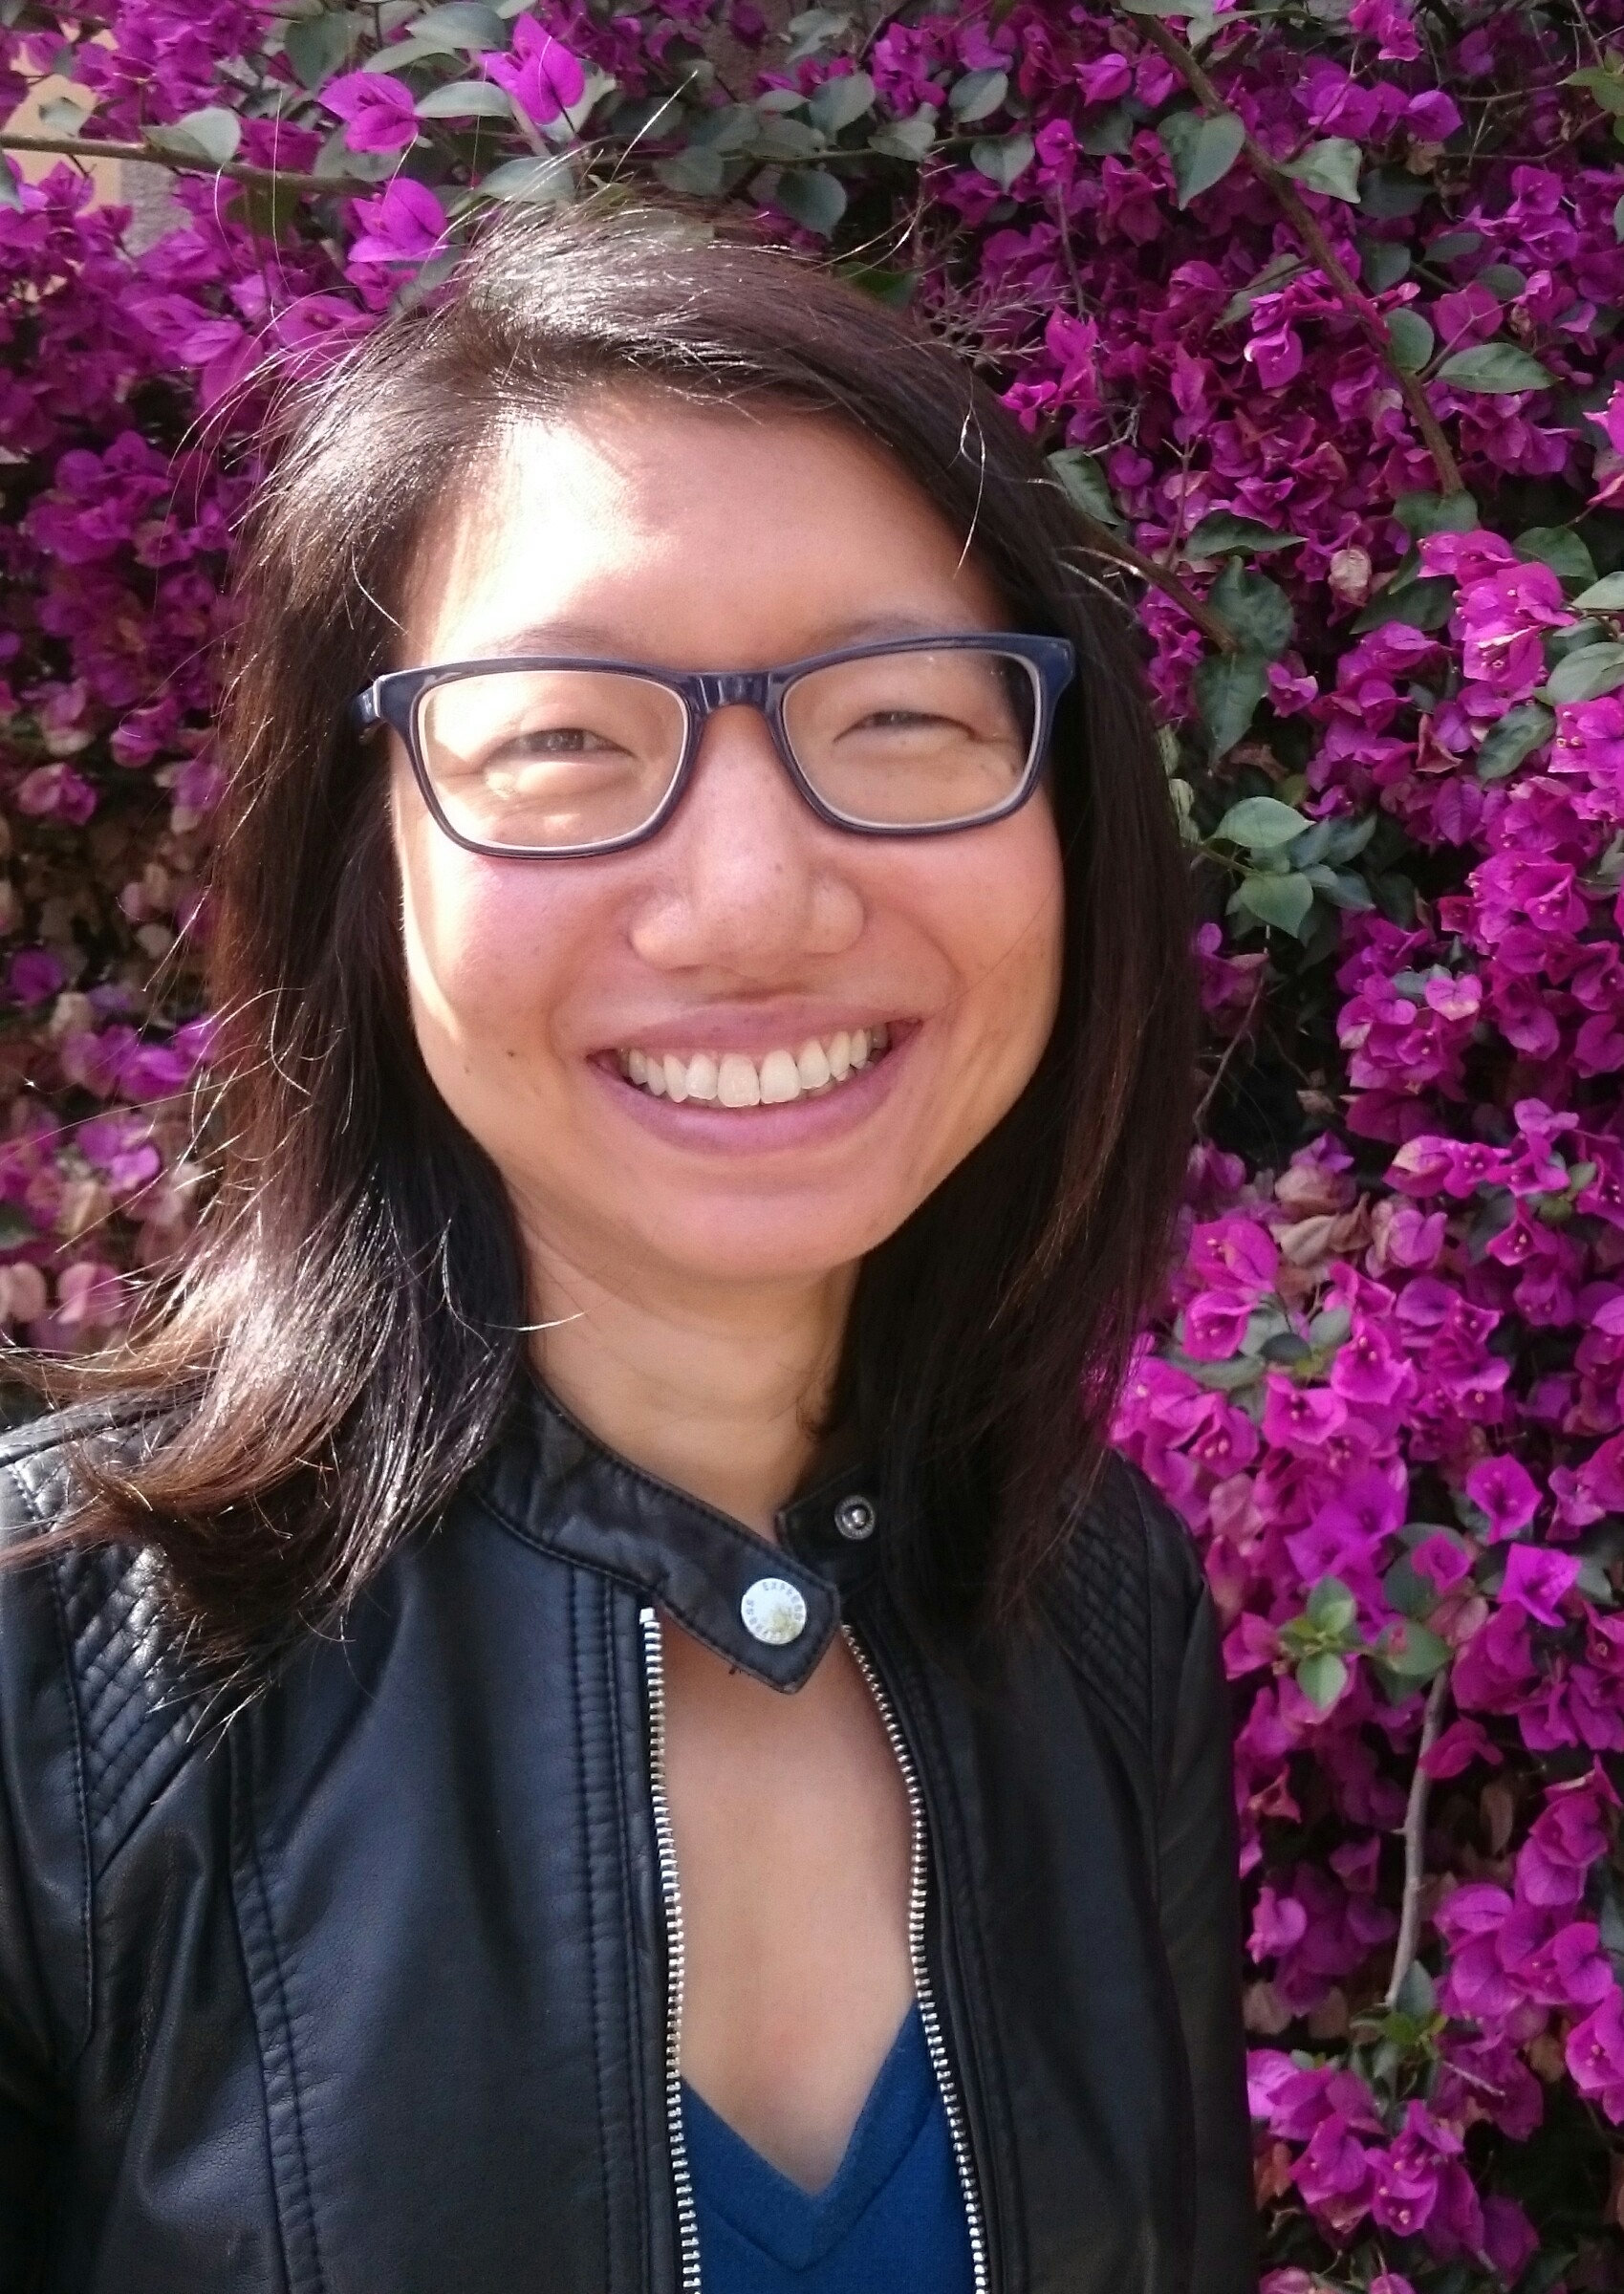 About Want - Want Chyi has taught composition and creative writing across the United States and in Singapore. She has an M.F.A. in fiction from Arizona State University and was the international fiction editor of Hayden's Ferry Review. Originally from the Midwest, she now lives in the Bay Area and currently reads for Zoetrope: All-Story.